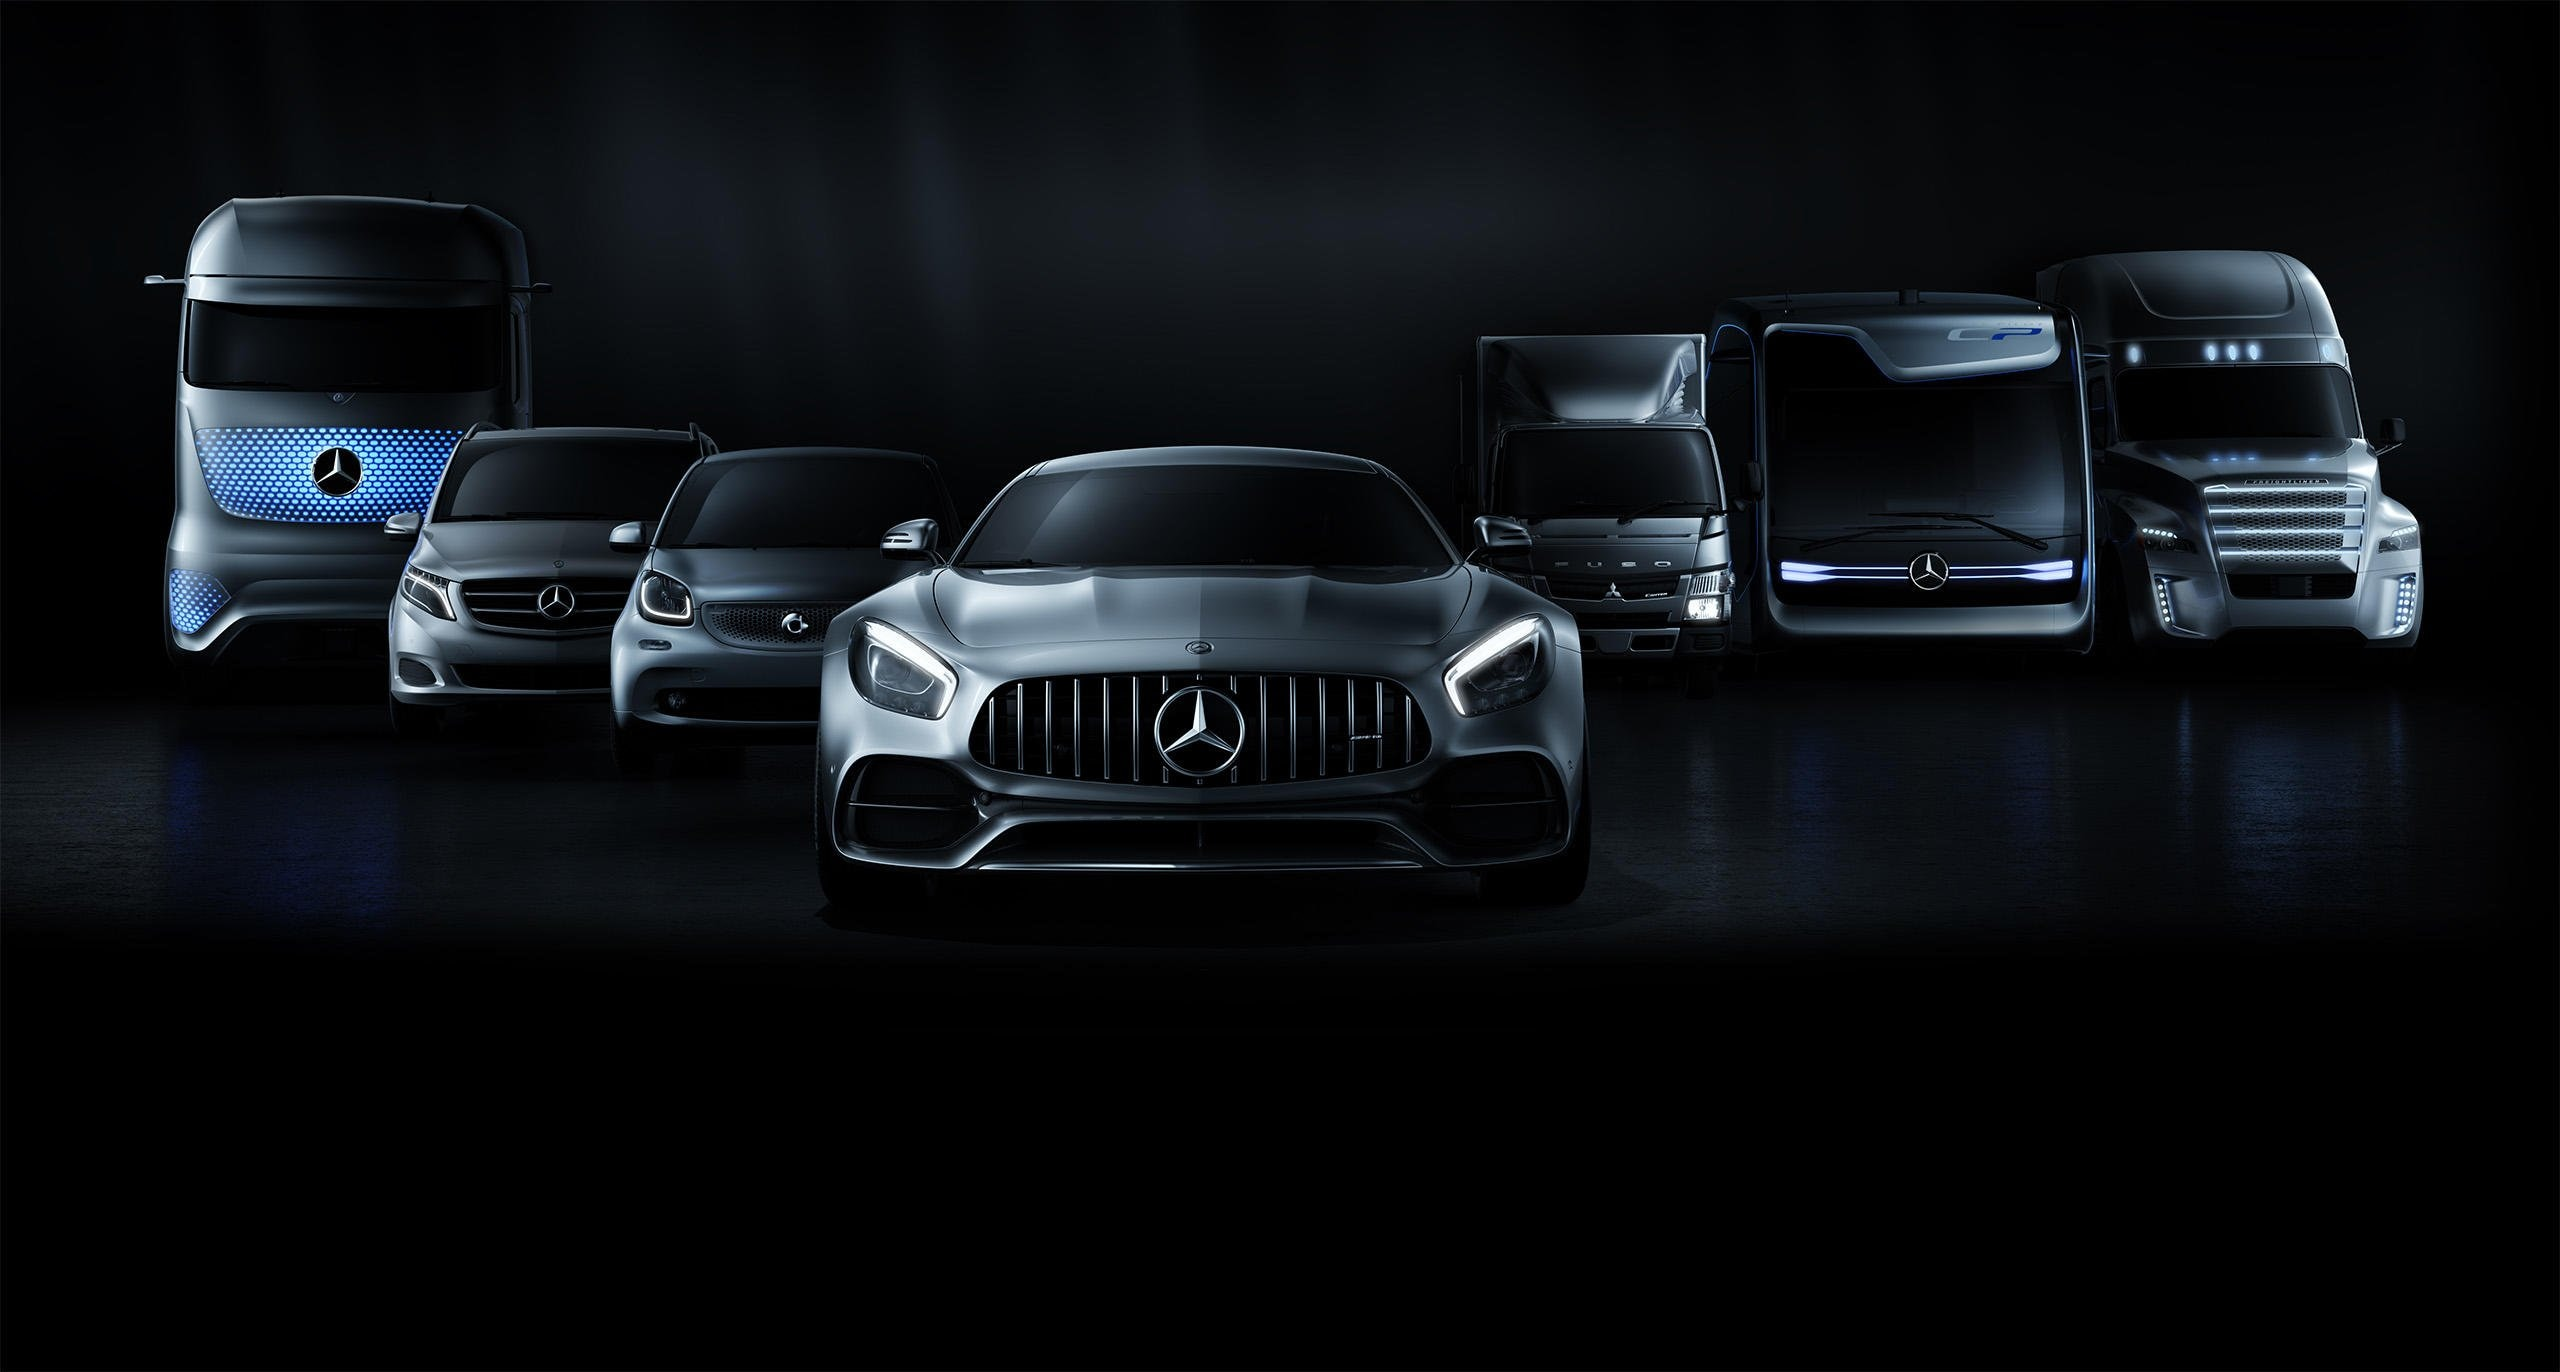 Frontal view of different Mercedes-Benz cars and commercial vehicles.